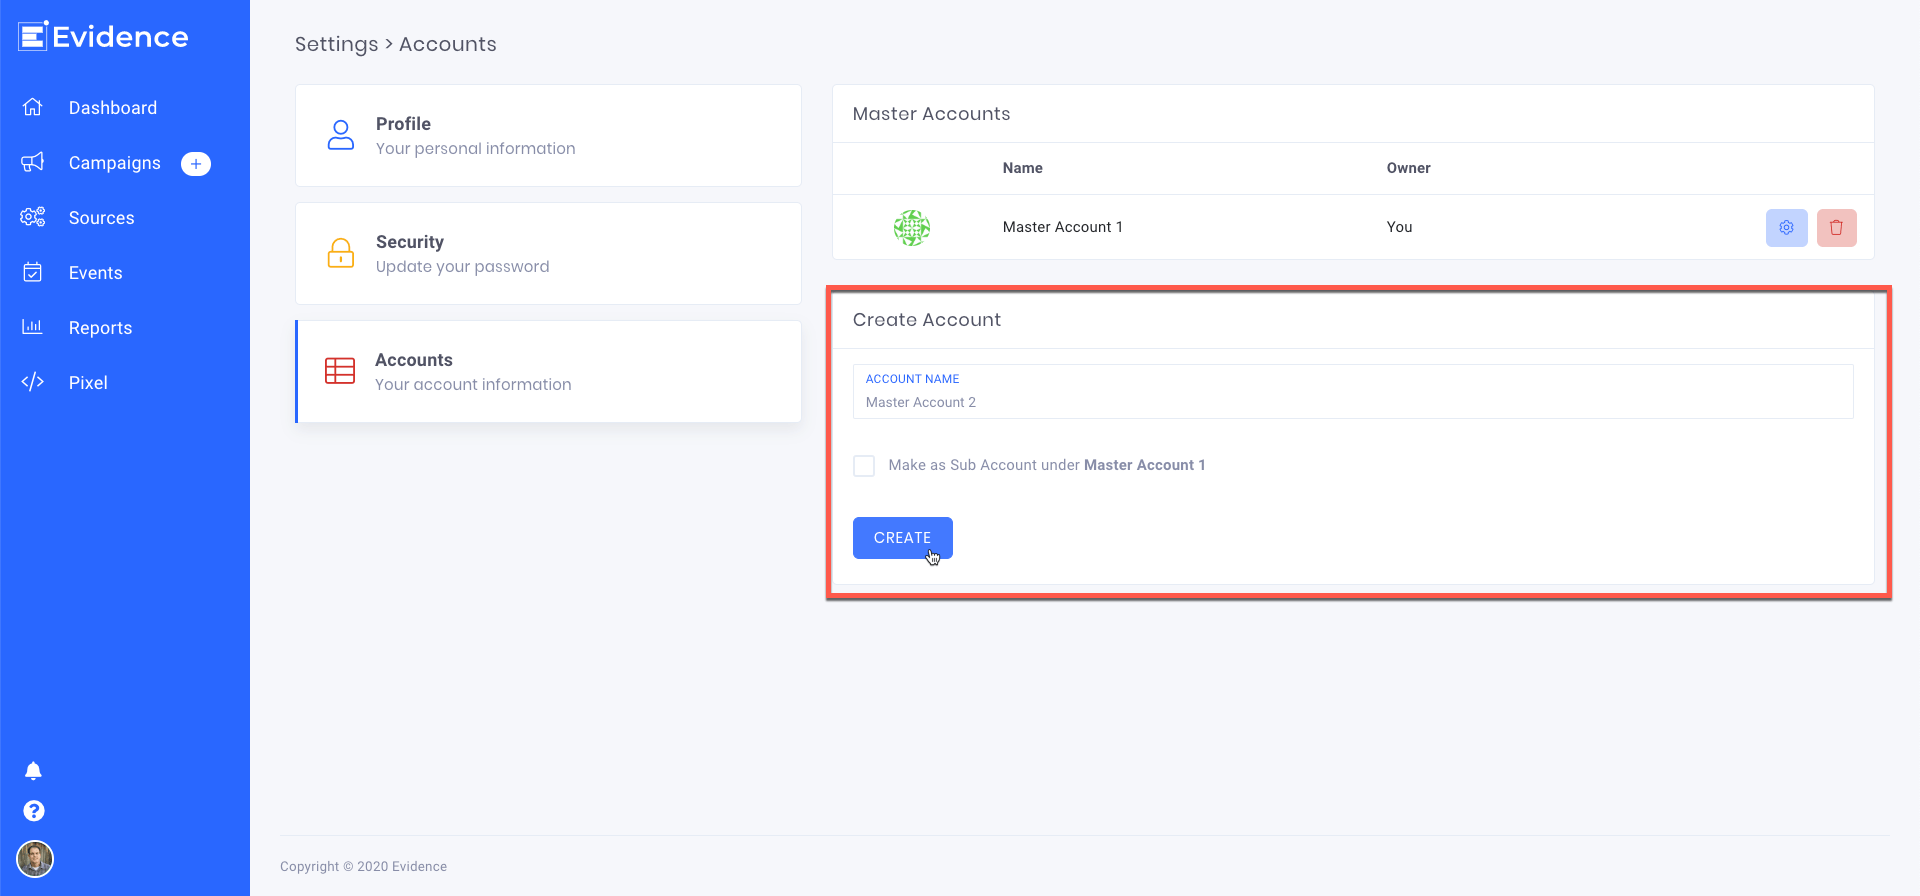 If you have multiple businesses that need their own pixel and billing thresholds, you can easily create an additional master account with your same user profile.